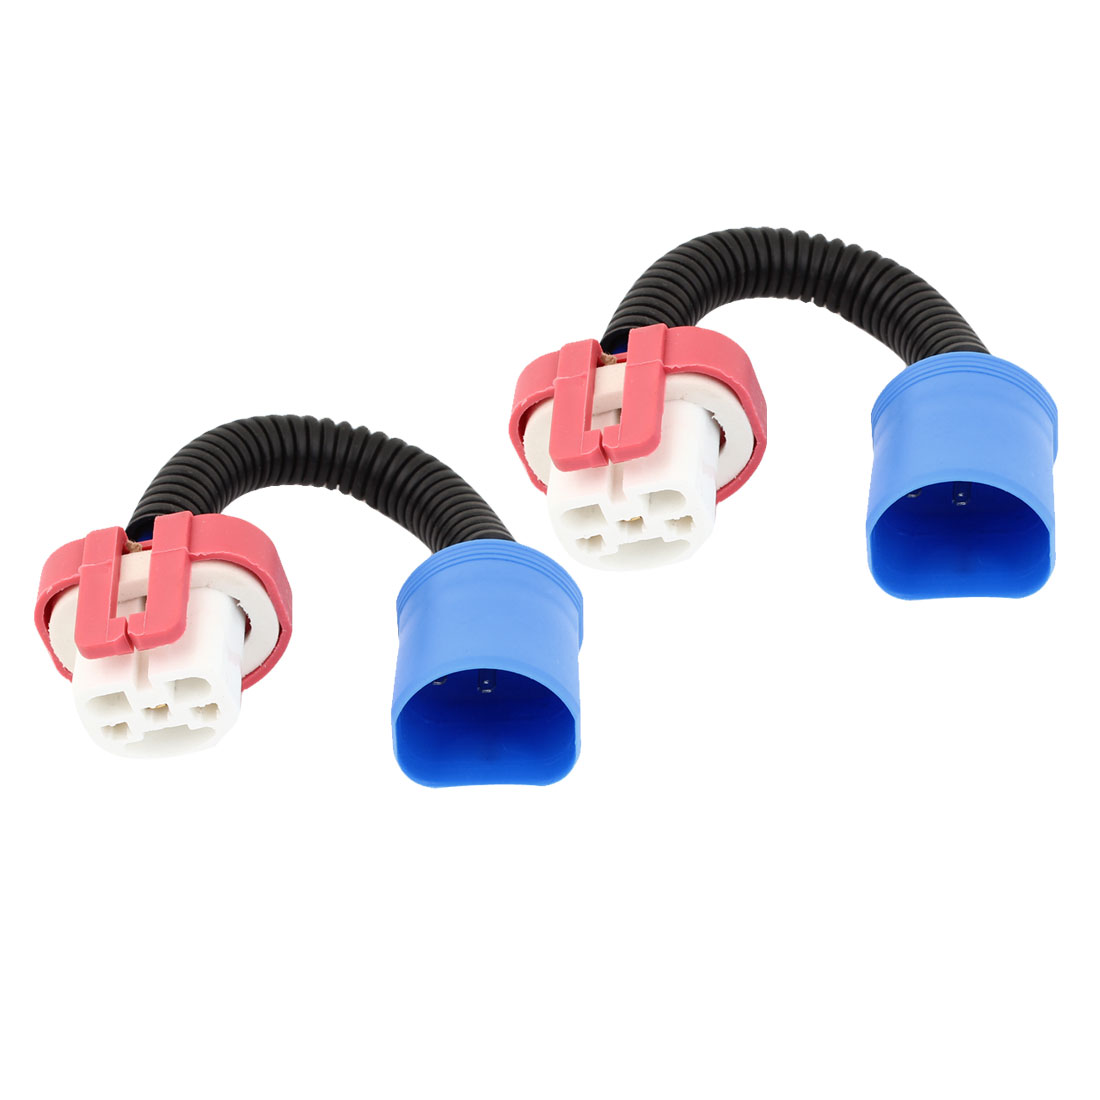 2x 9007 Ceramic Male to Female Harnesss Adapter Socket for Fog Light